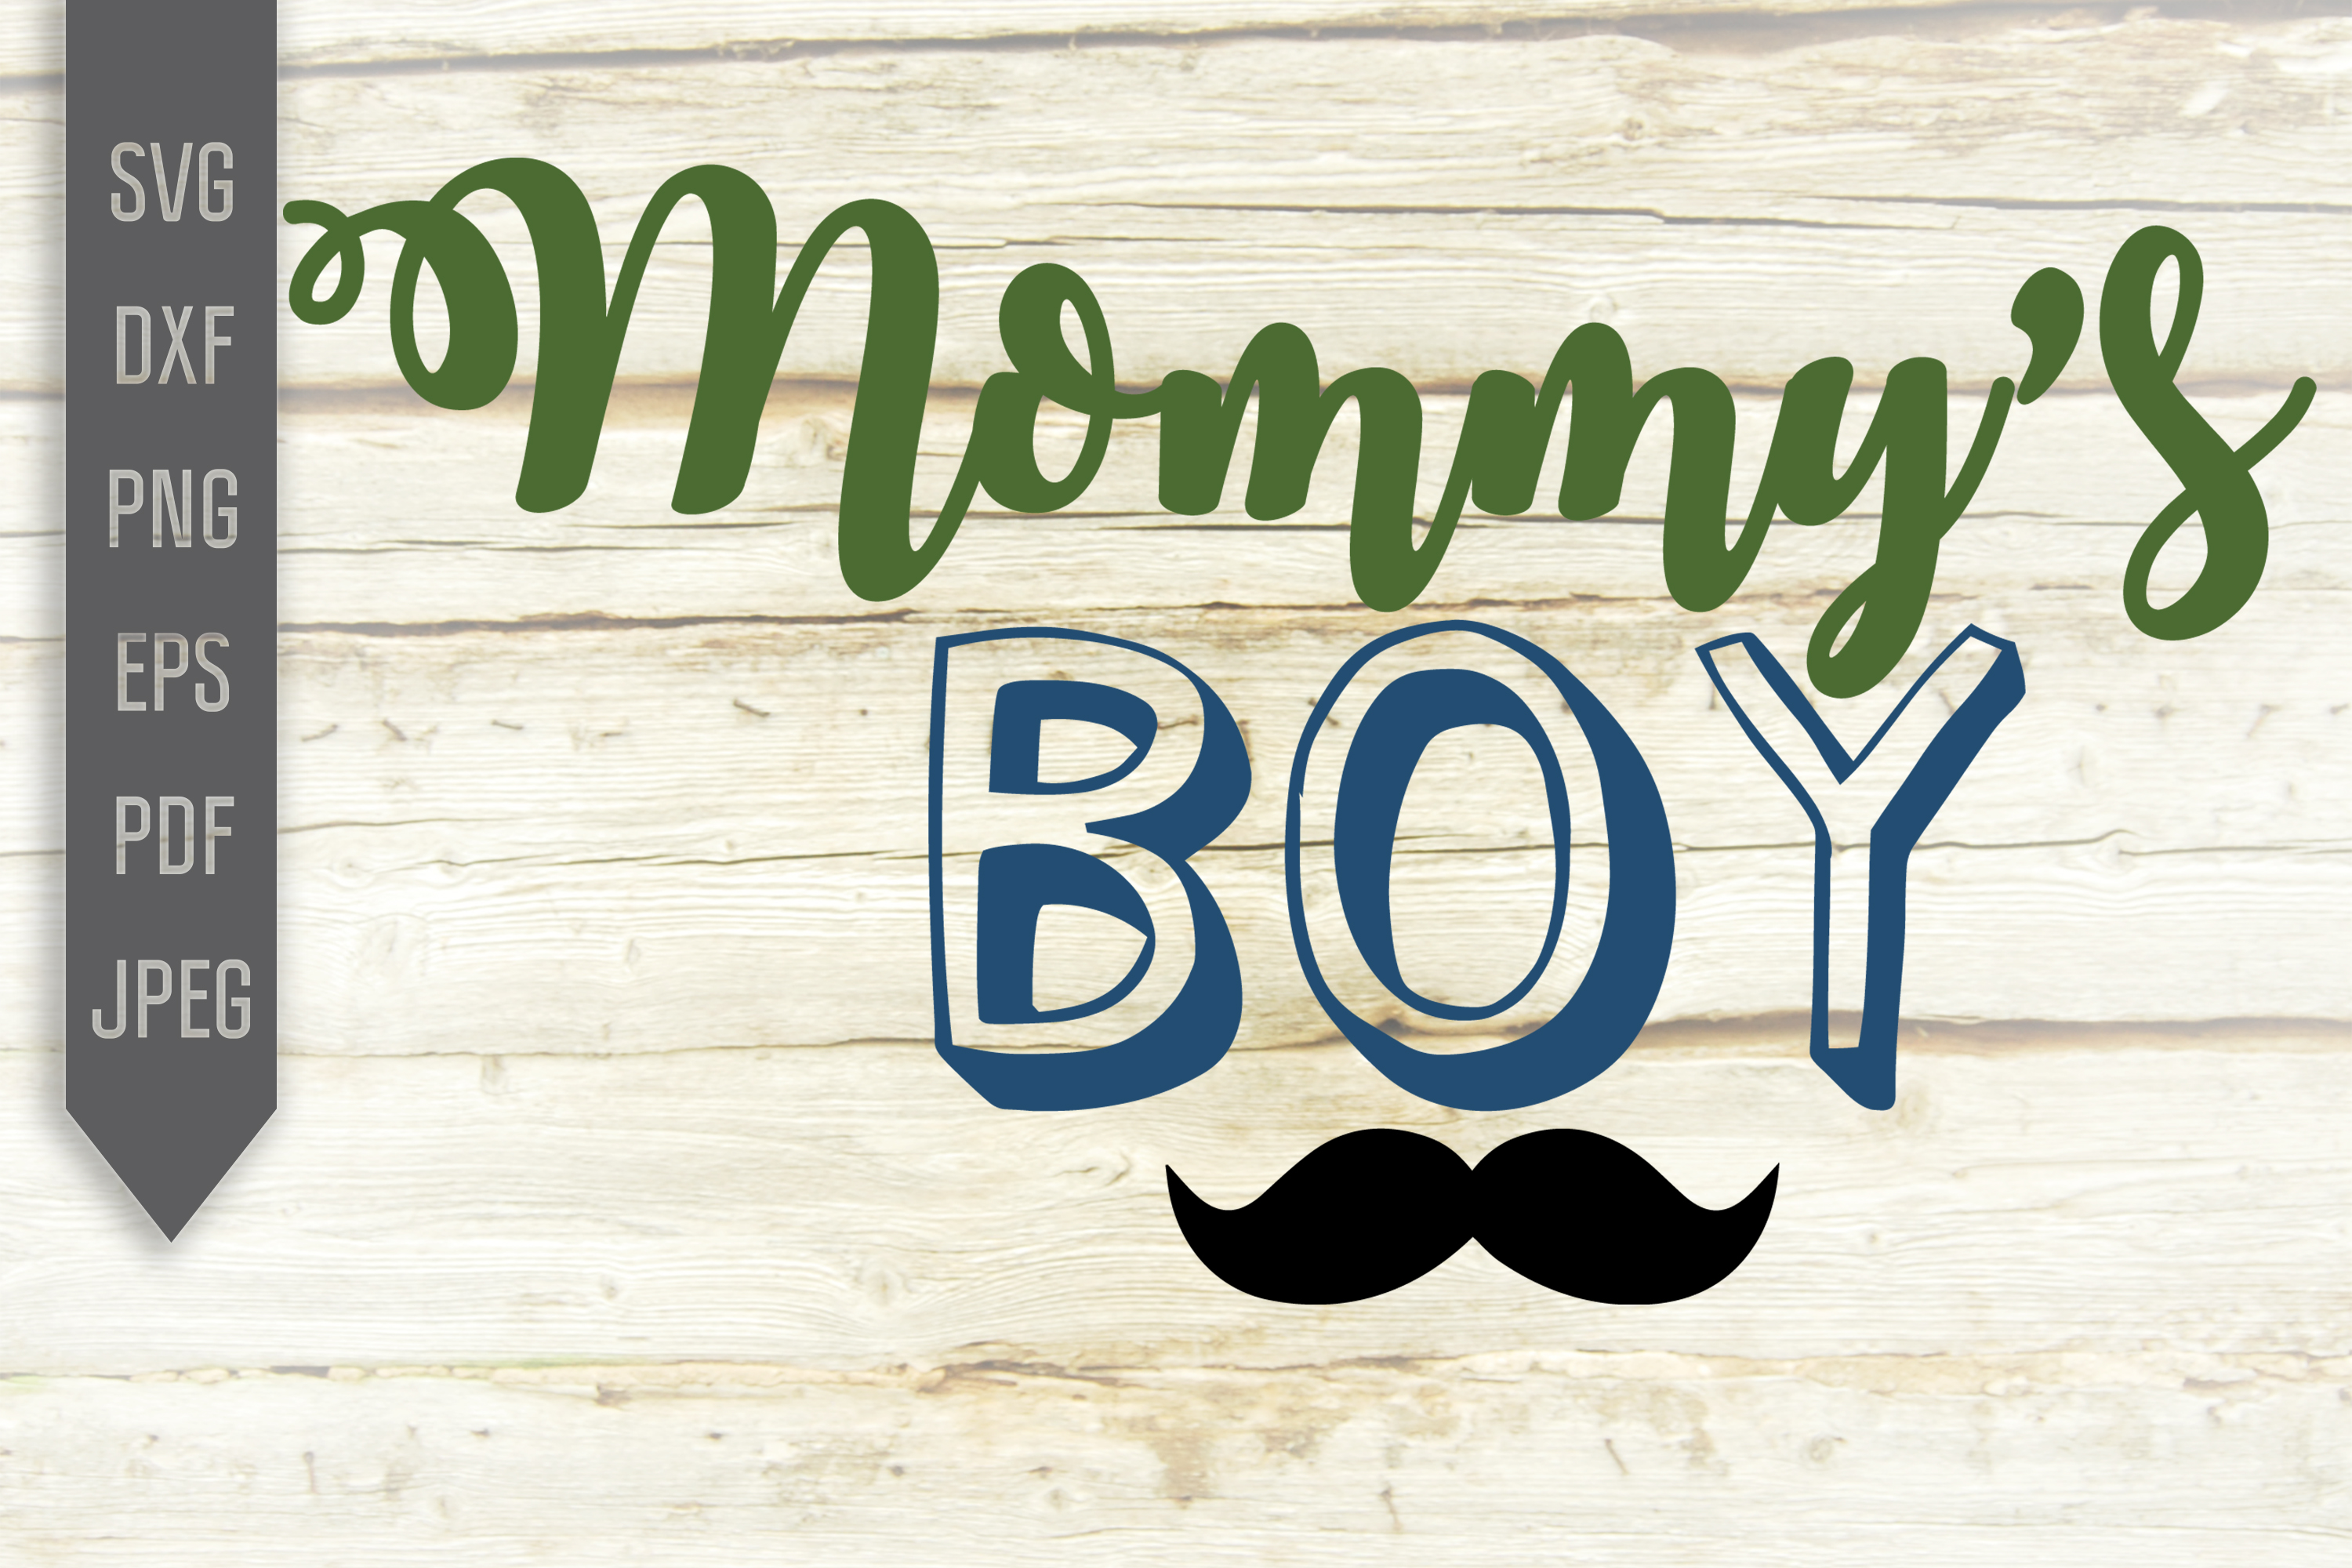 Download Free Mommy S Boy Cricut Silhouette File Graphic By Svglaboratory for Cricut Explore, Silhouette and other cutting machines.